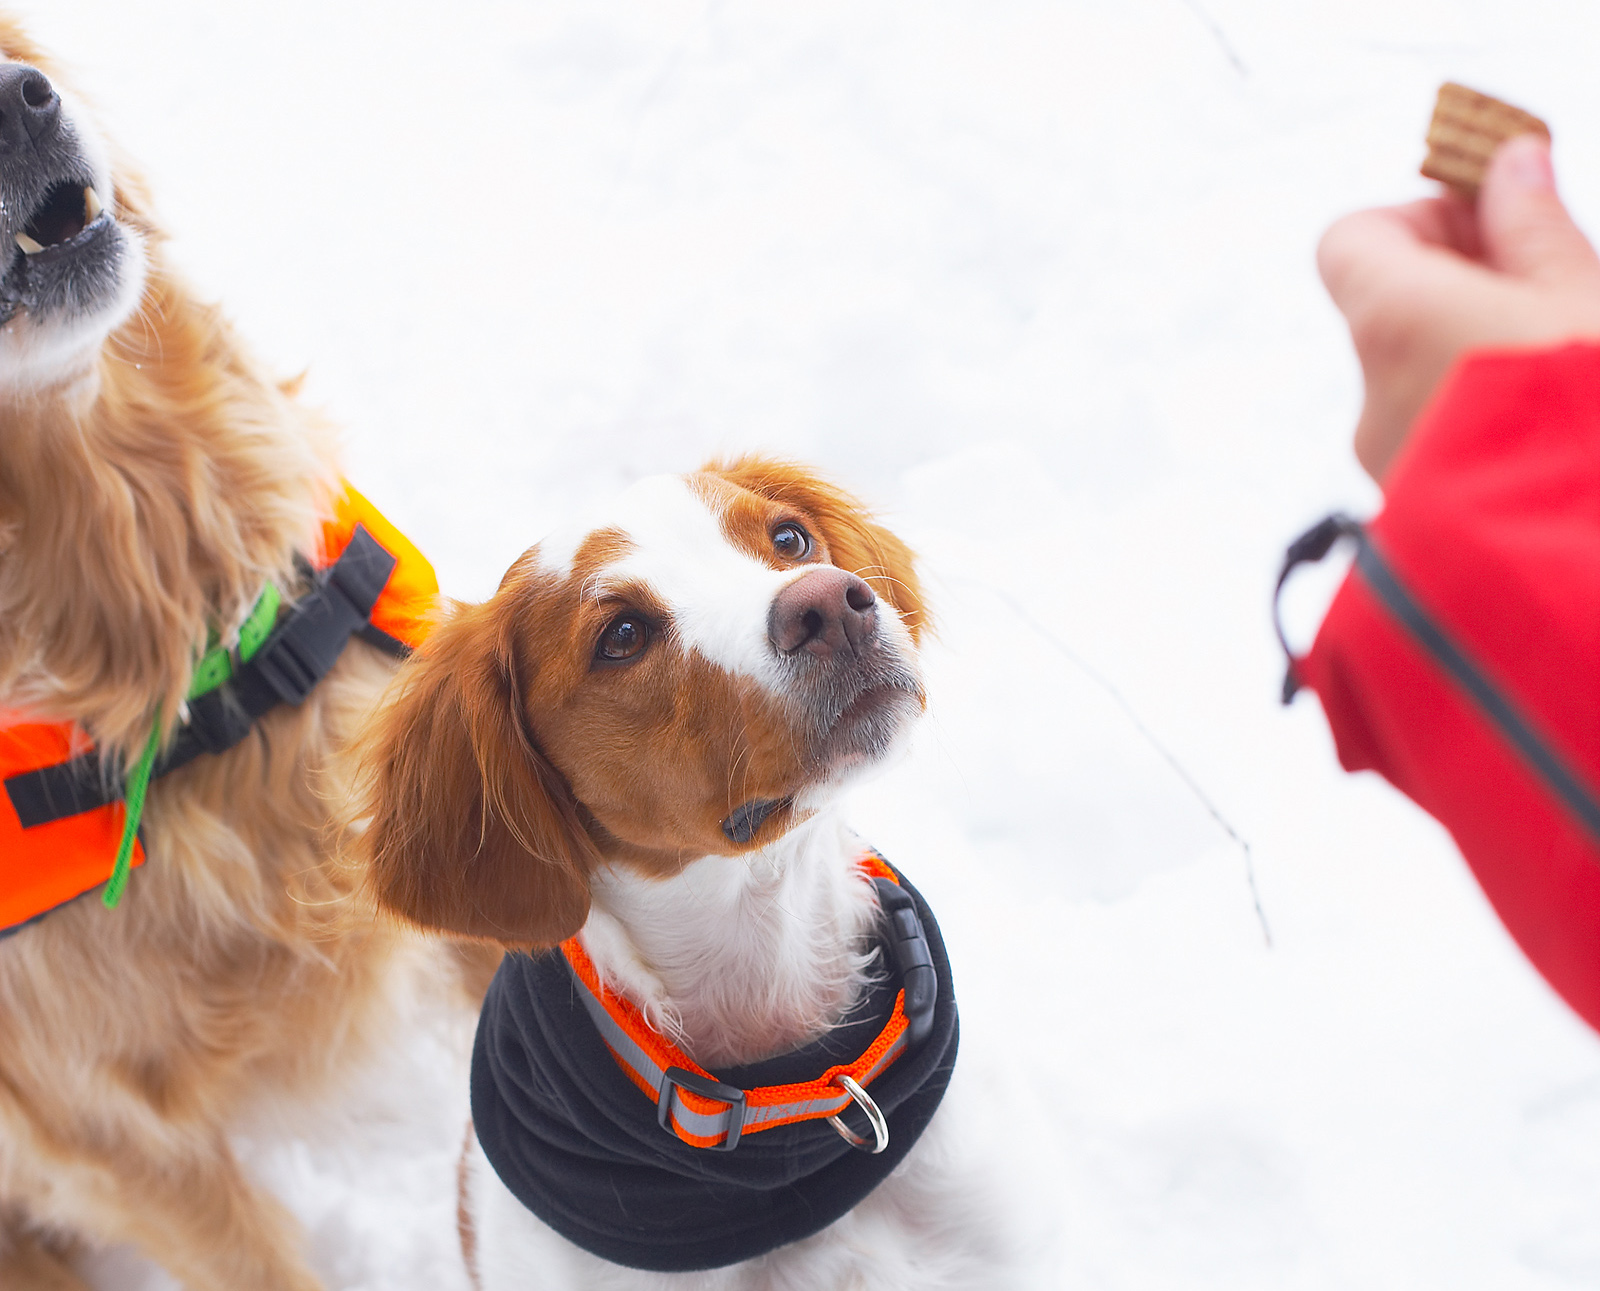 Dogs getting a treat